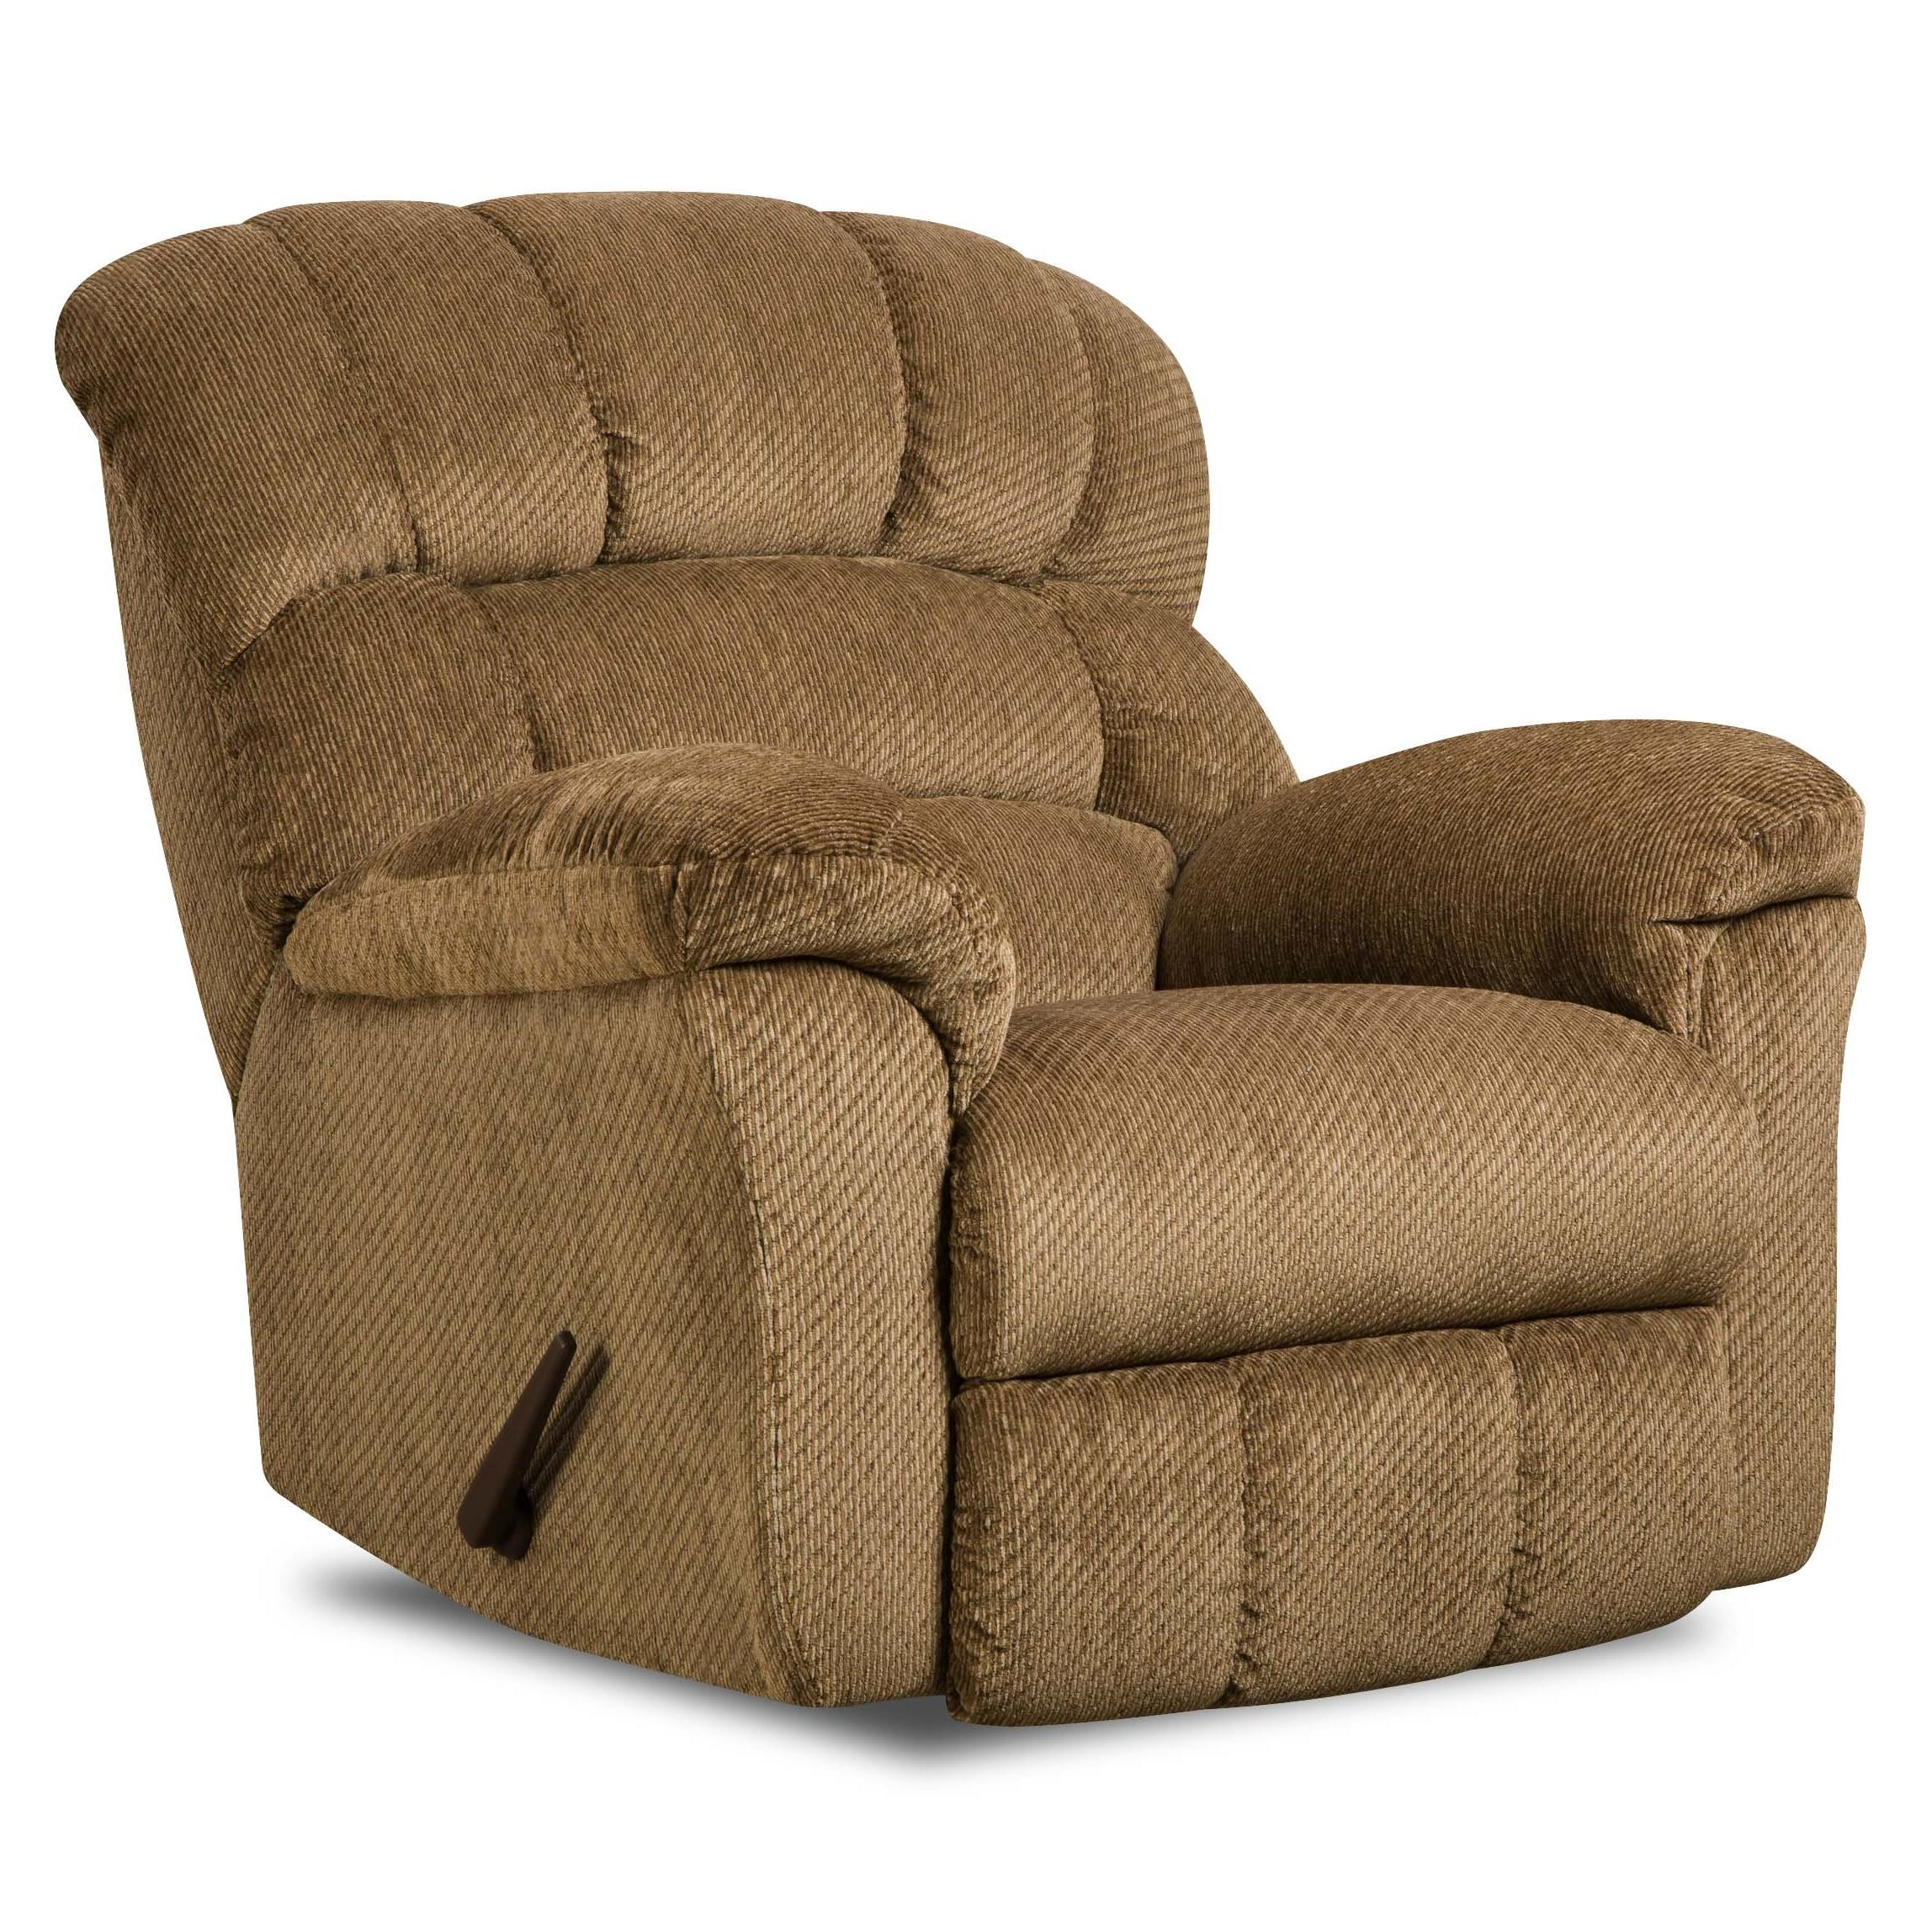 oversized rocking chair cushions baseball bean bag united furniture industries 558 558rockerrecliner large